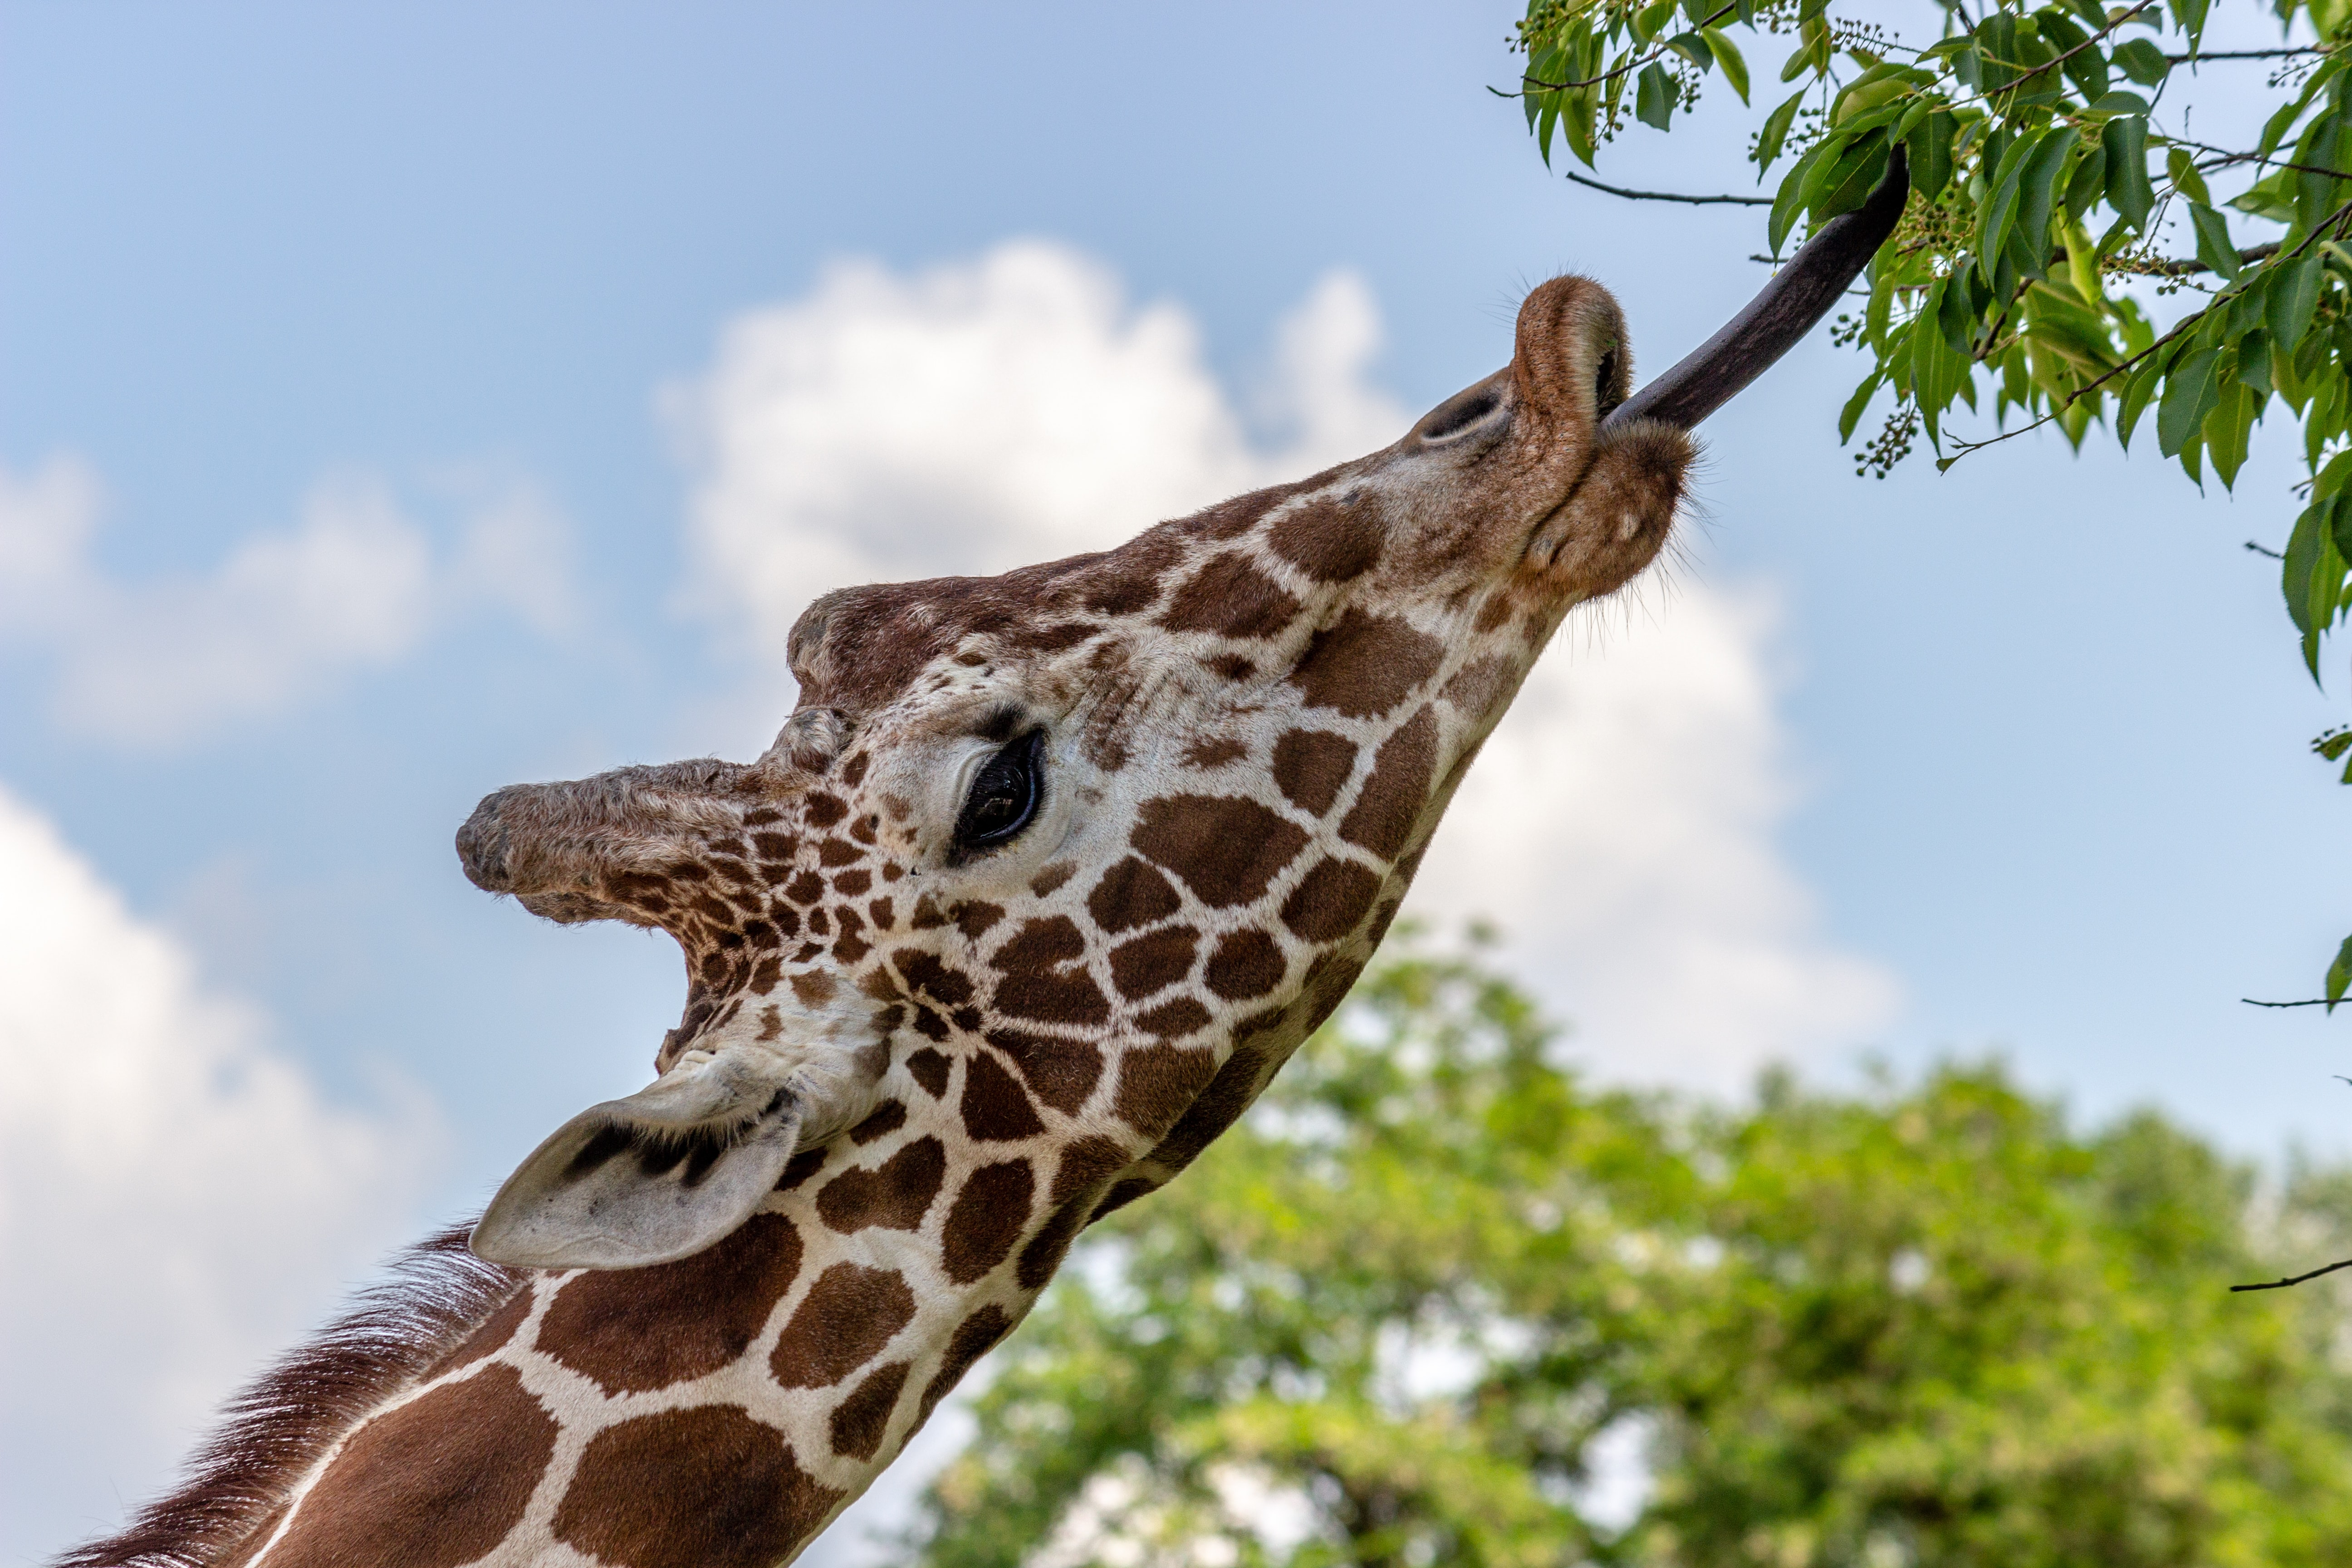 giraffe reaching tree leaves by its tongue during daytime